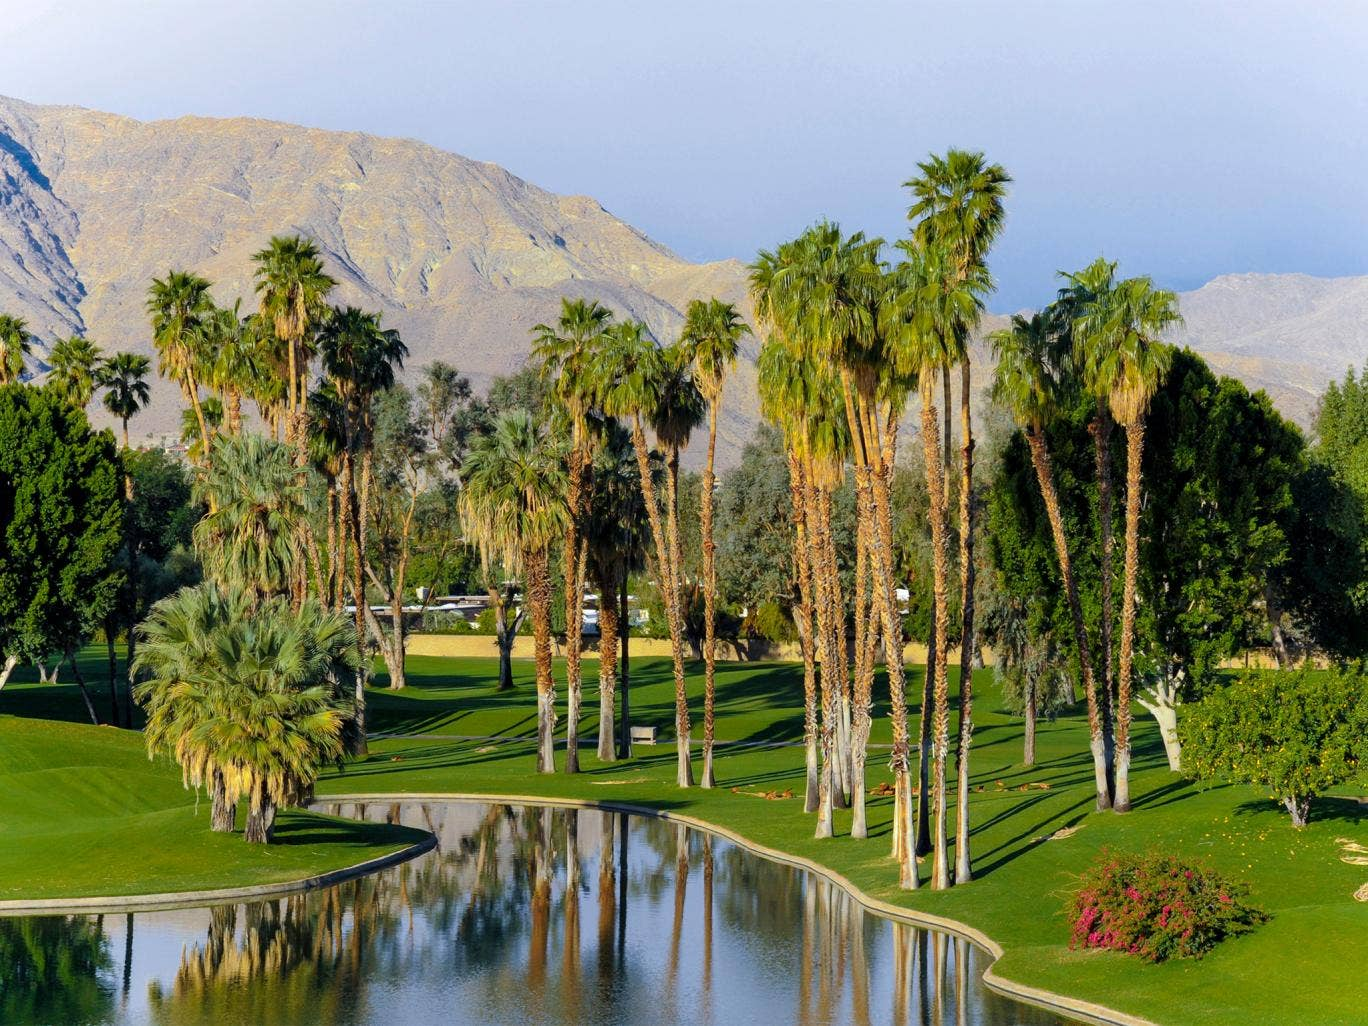 The Desert Island Golf and Country Club in Rancho Mirage, California, could soon acquire some famous new members